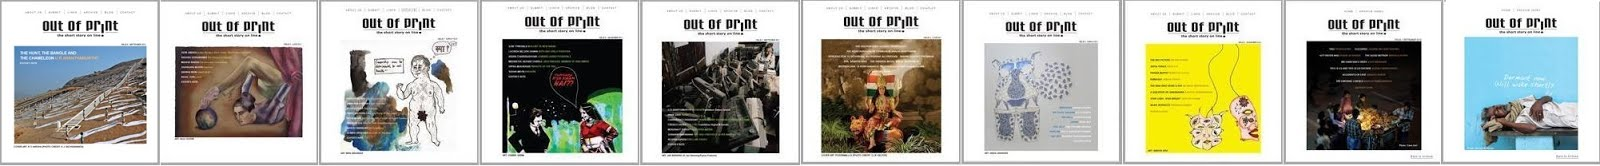 Out of Print Blog